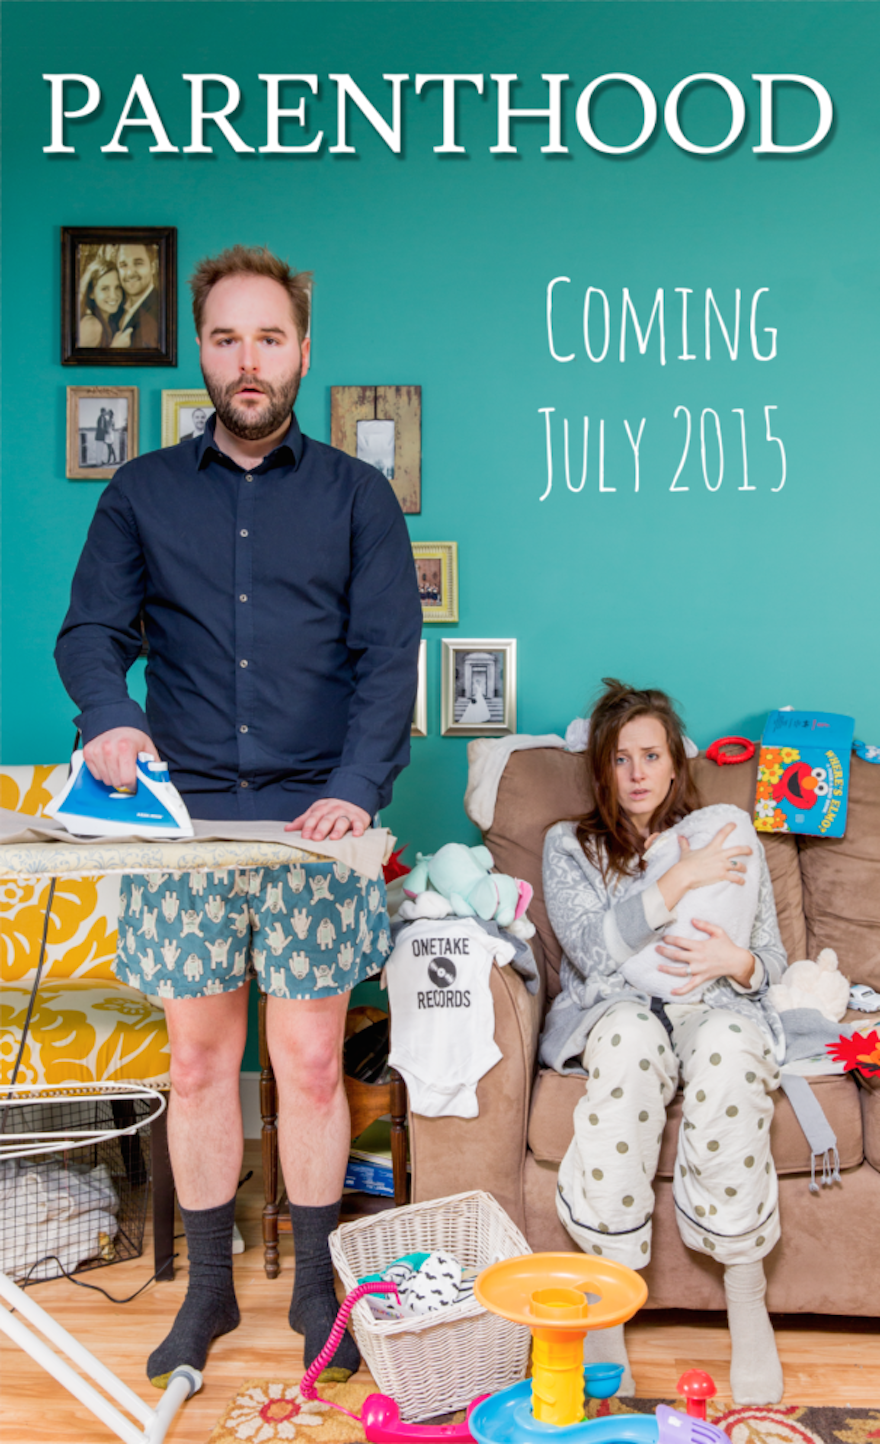 30 Of The Most Creative Baby Announcements Ever - A Sneak Preview Of What's To Come